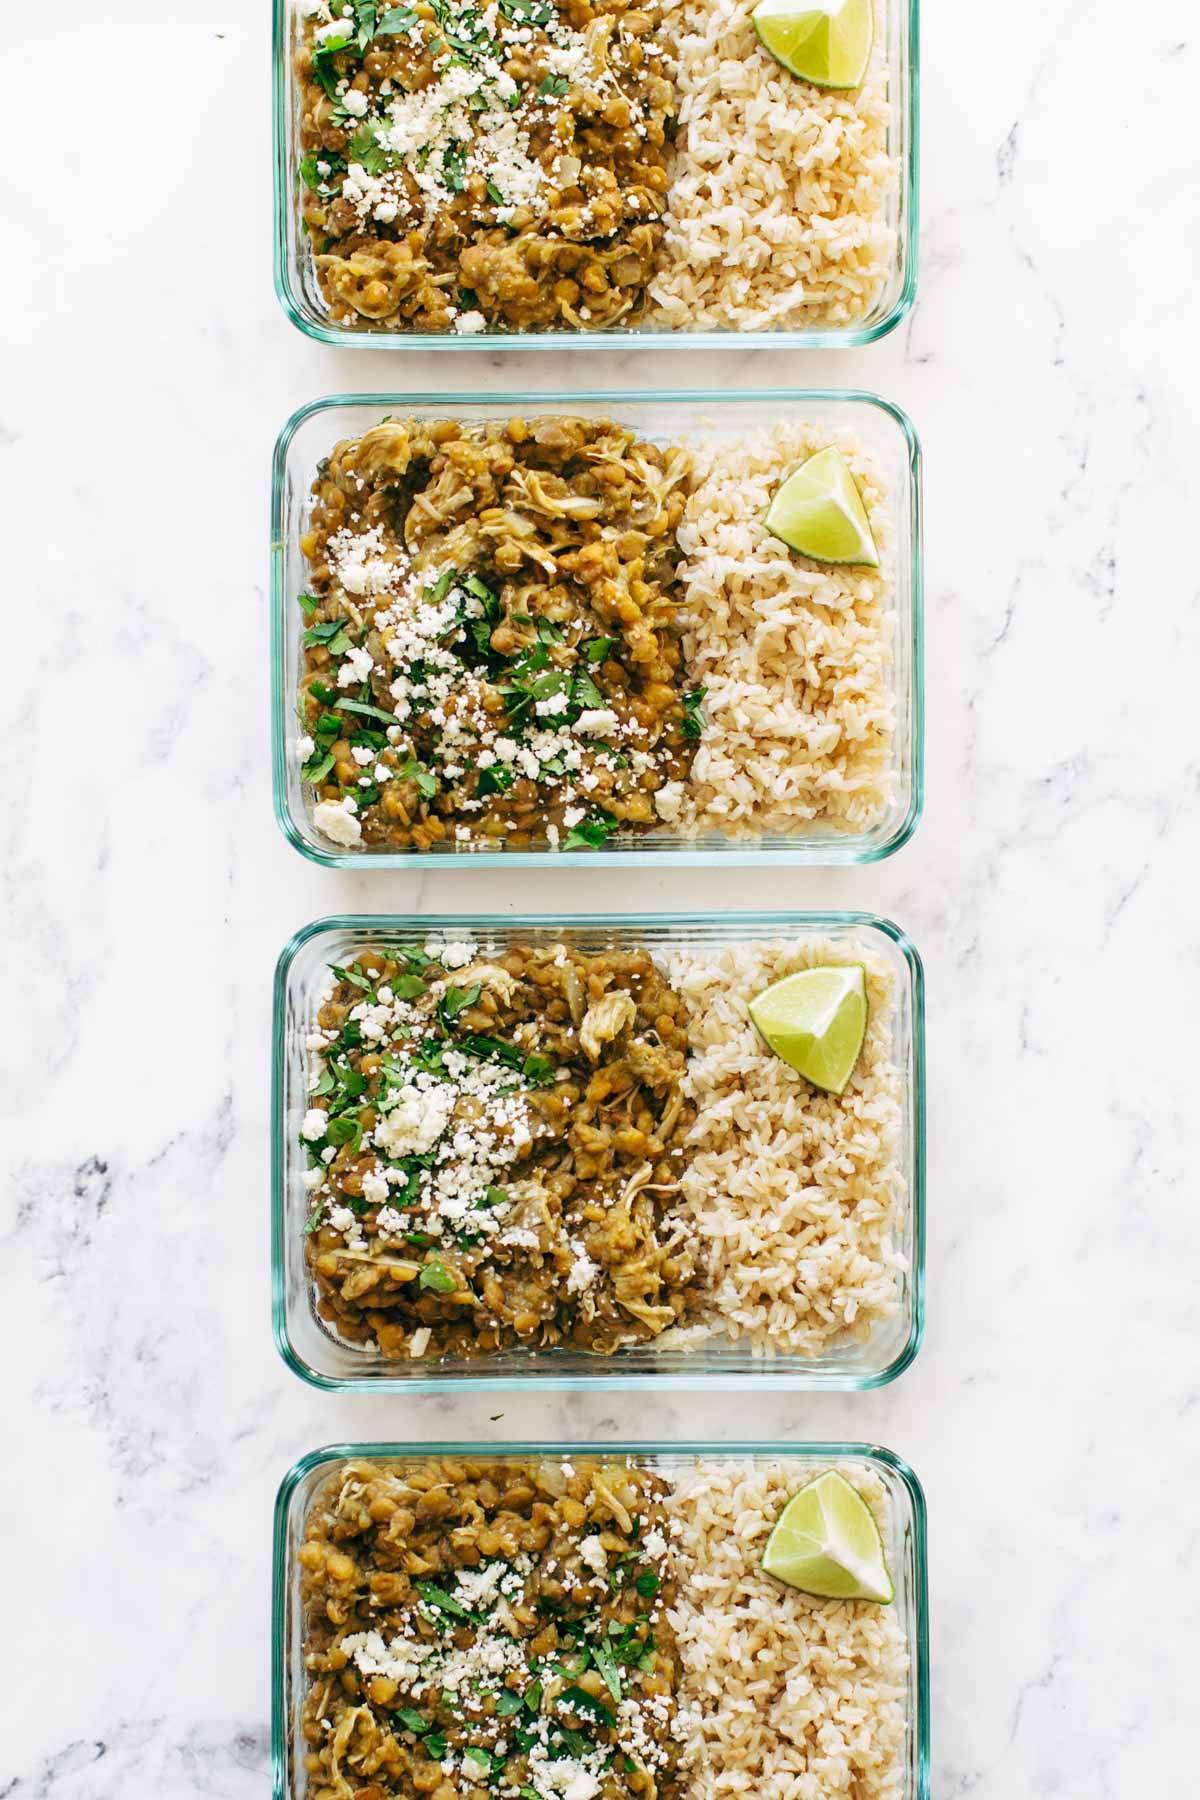 Cilantro Lime Chicken and Lentils in meal prep containers.